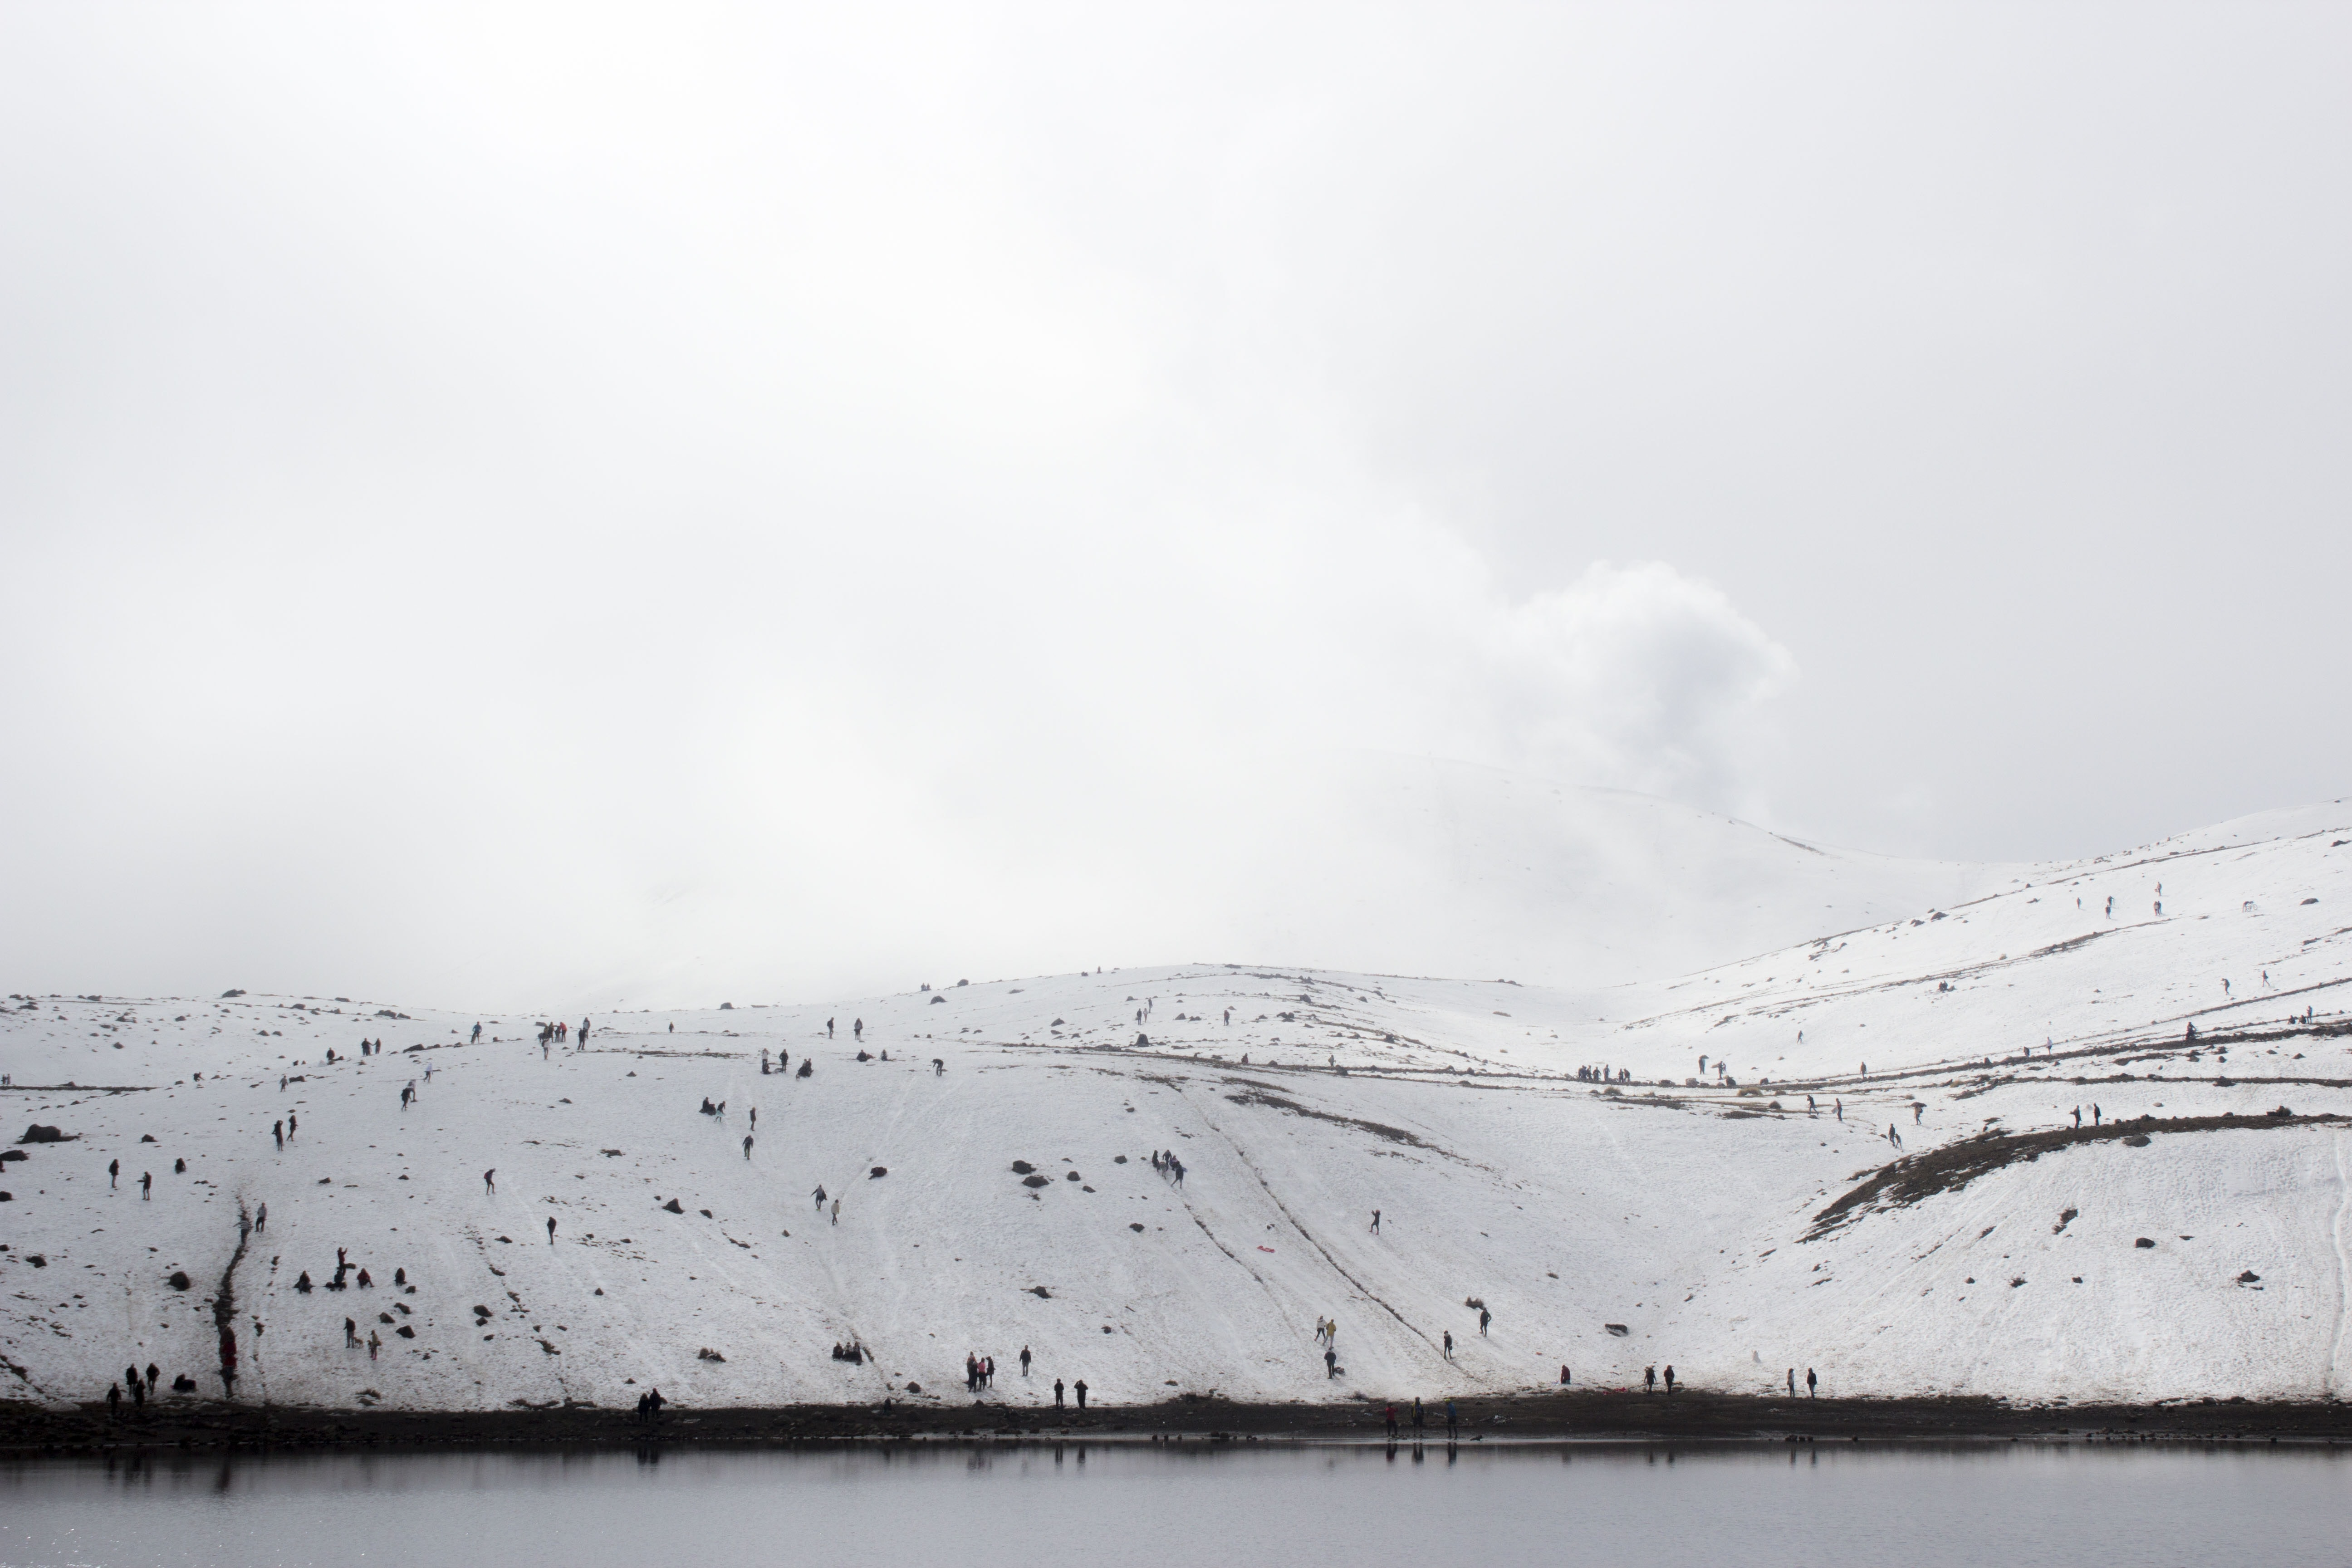 snow-covered land near body of water